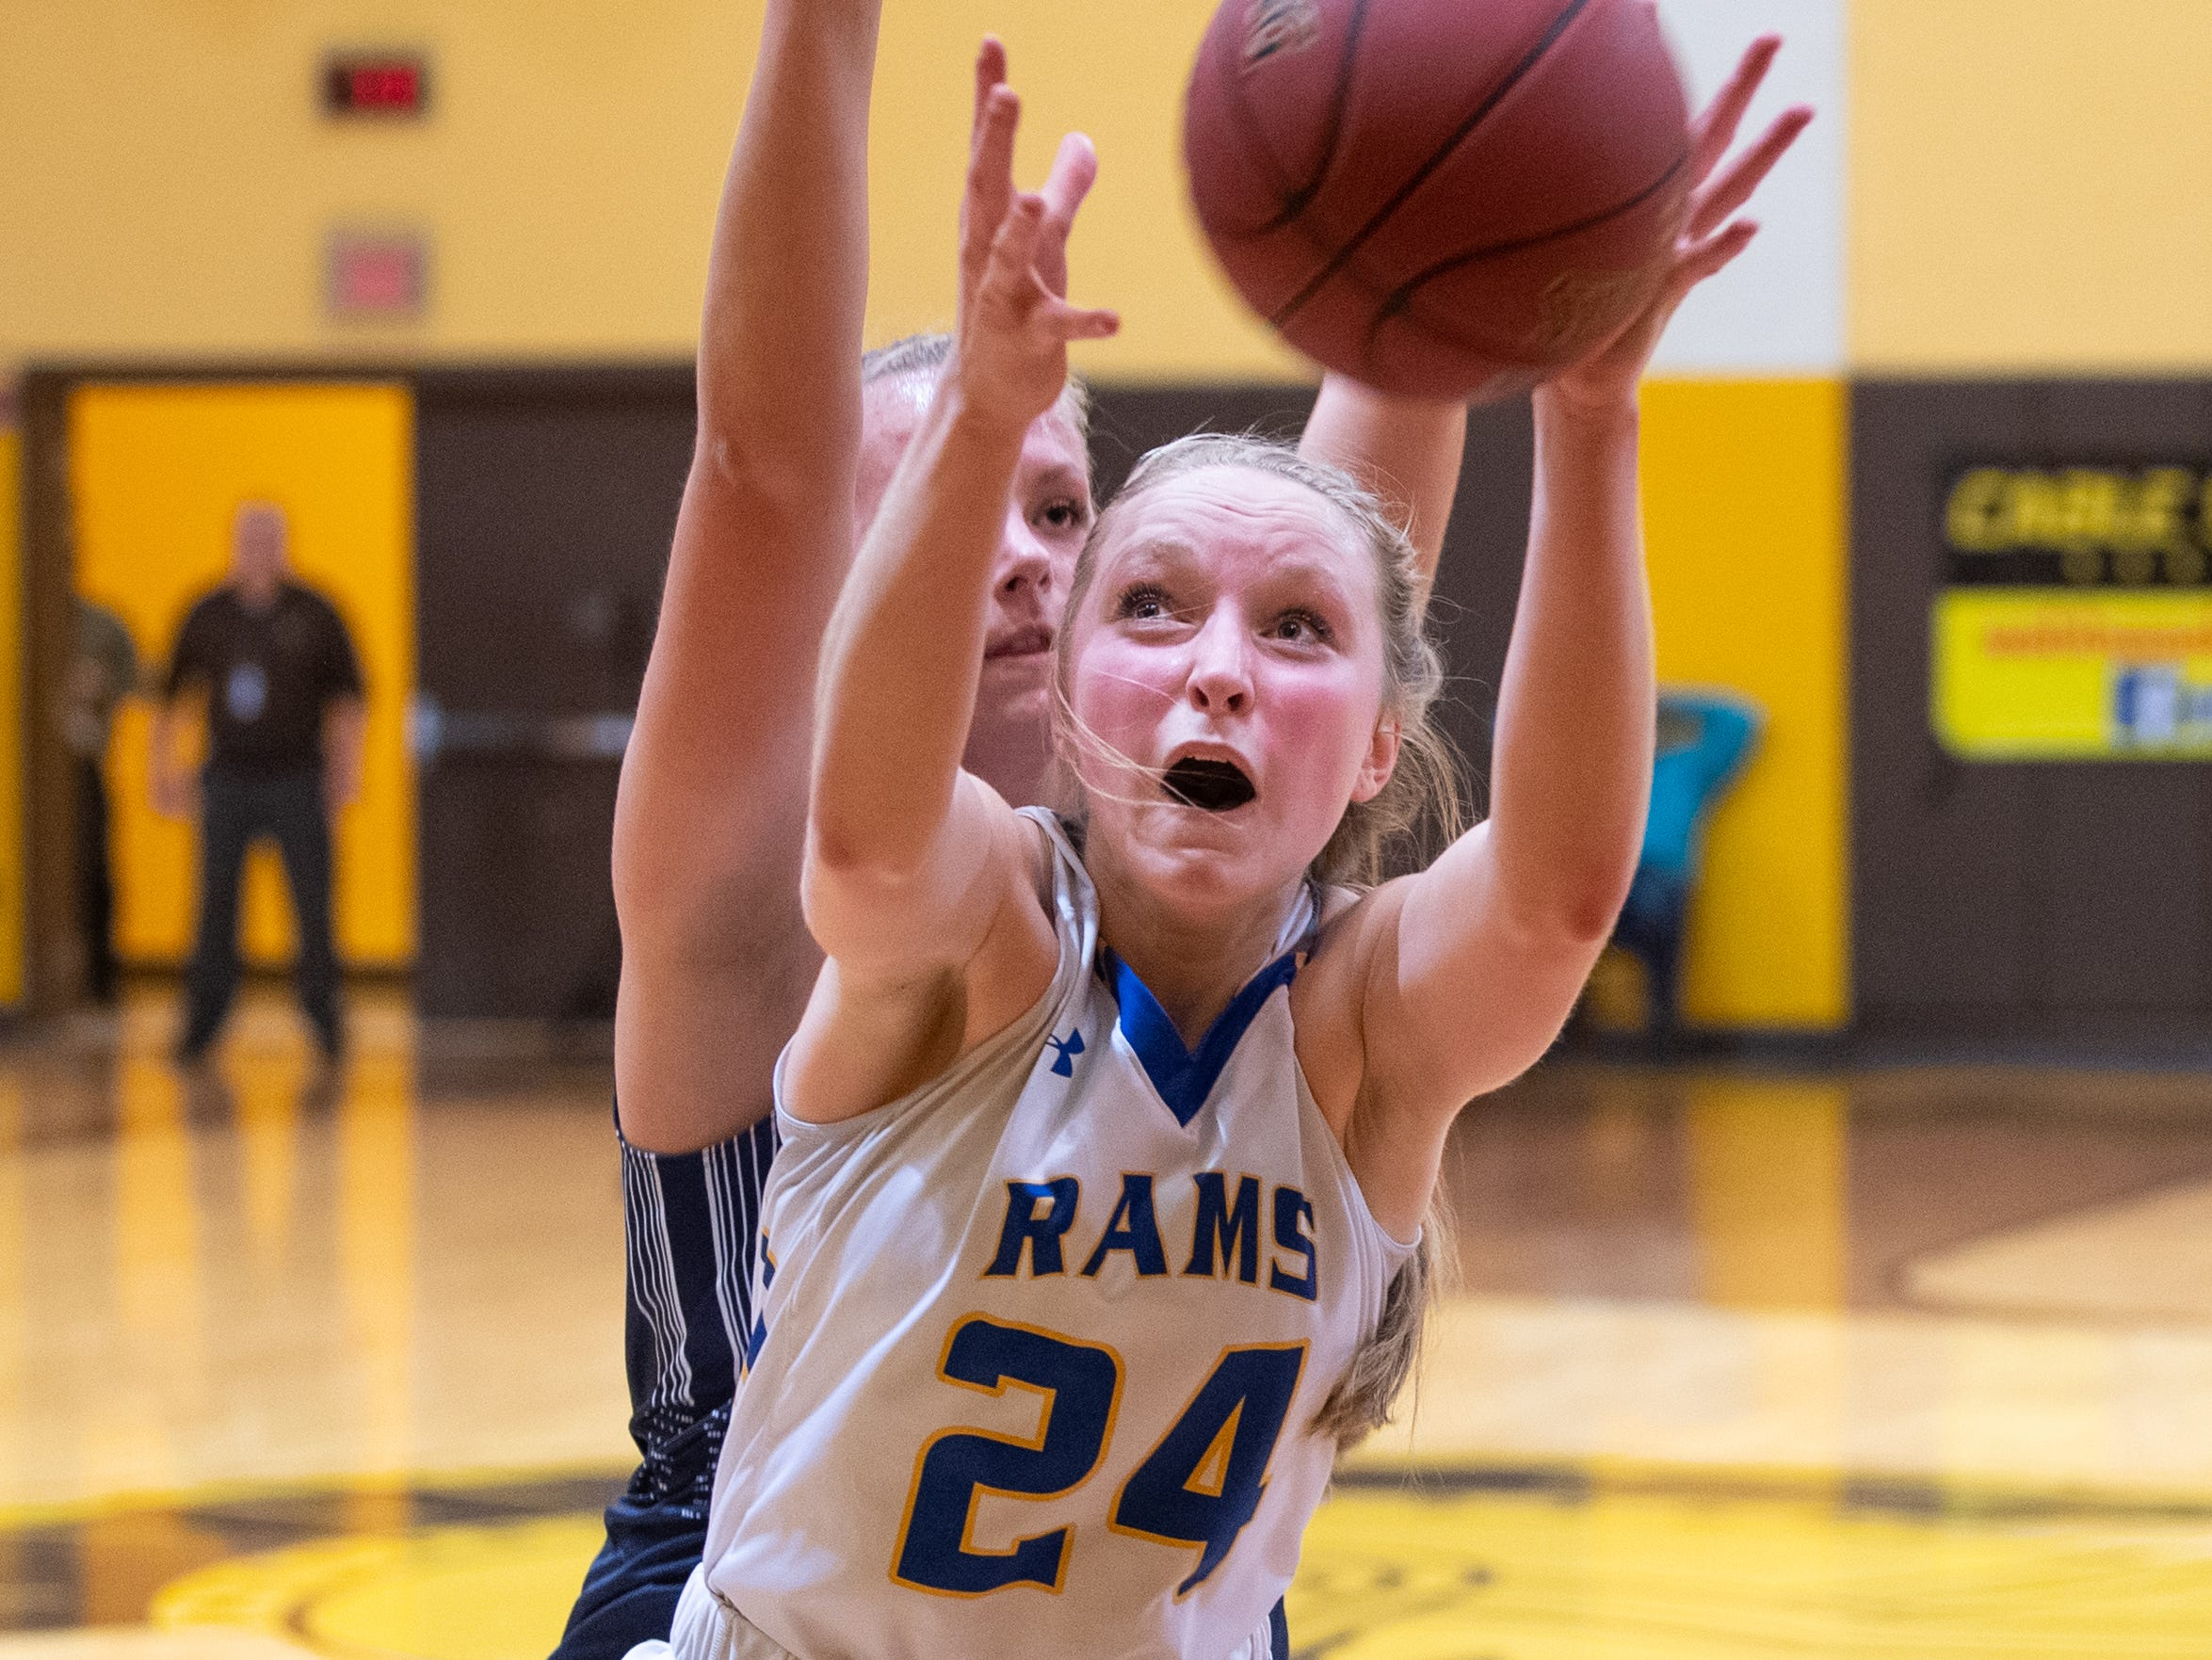 Lexie Kopko (24) catches the ball in the paint during the PIAA second round girls' basketball game between Kennard-Dale and Mifflinburg Area, March 13, 2019 at Milton Hershey School. The Rams fell to the Wildcats 51 to 45.